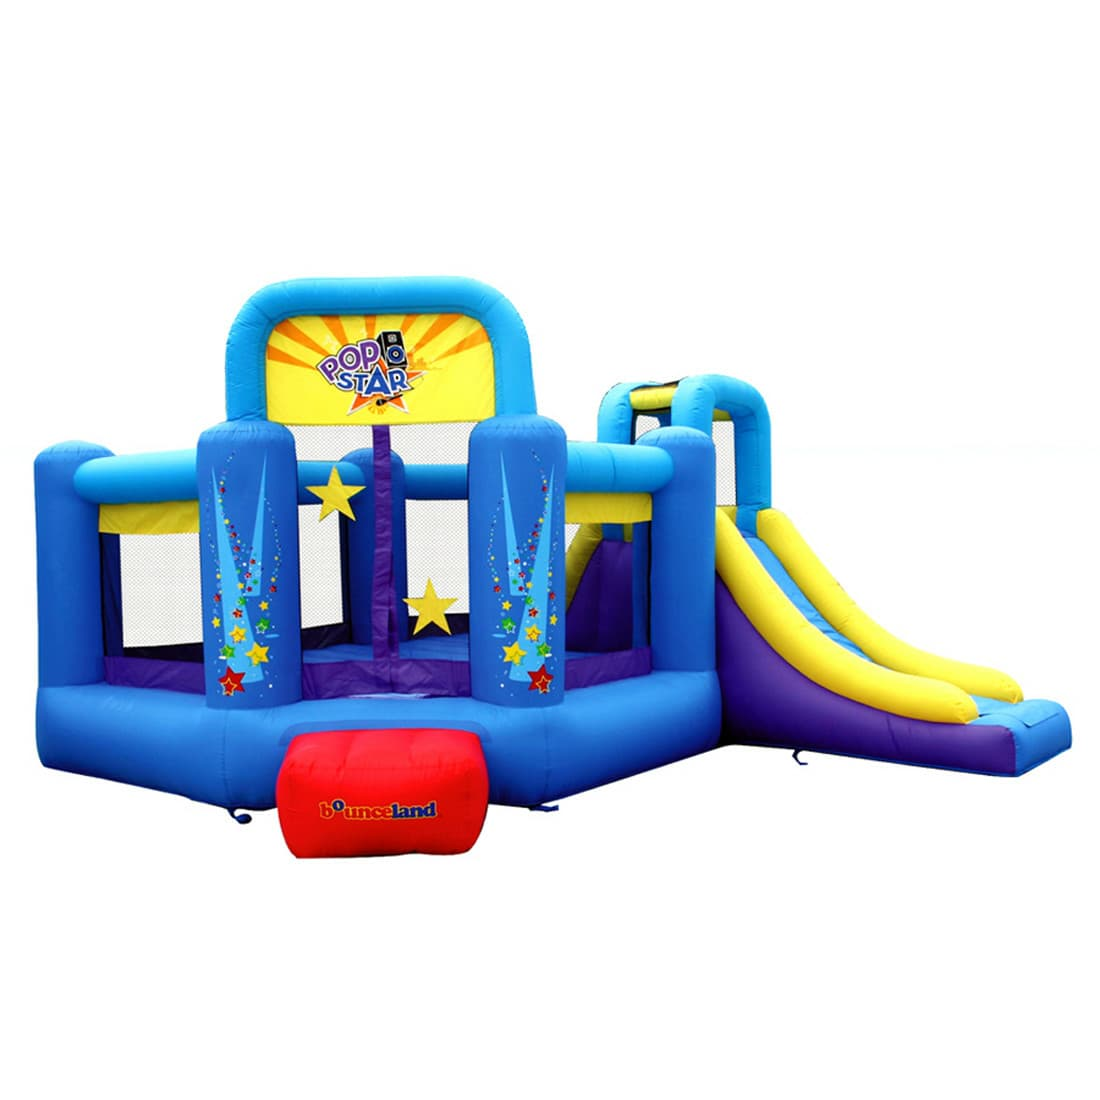 Location de jeu gonflables Montreal Bounce house rentals Popstar